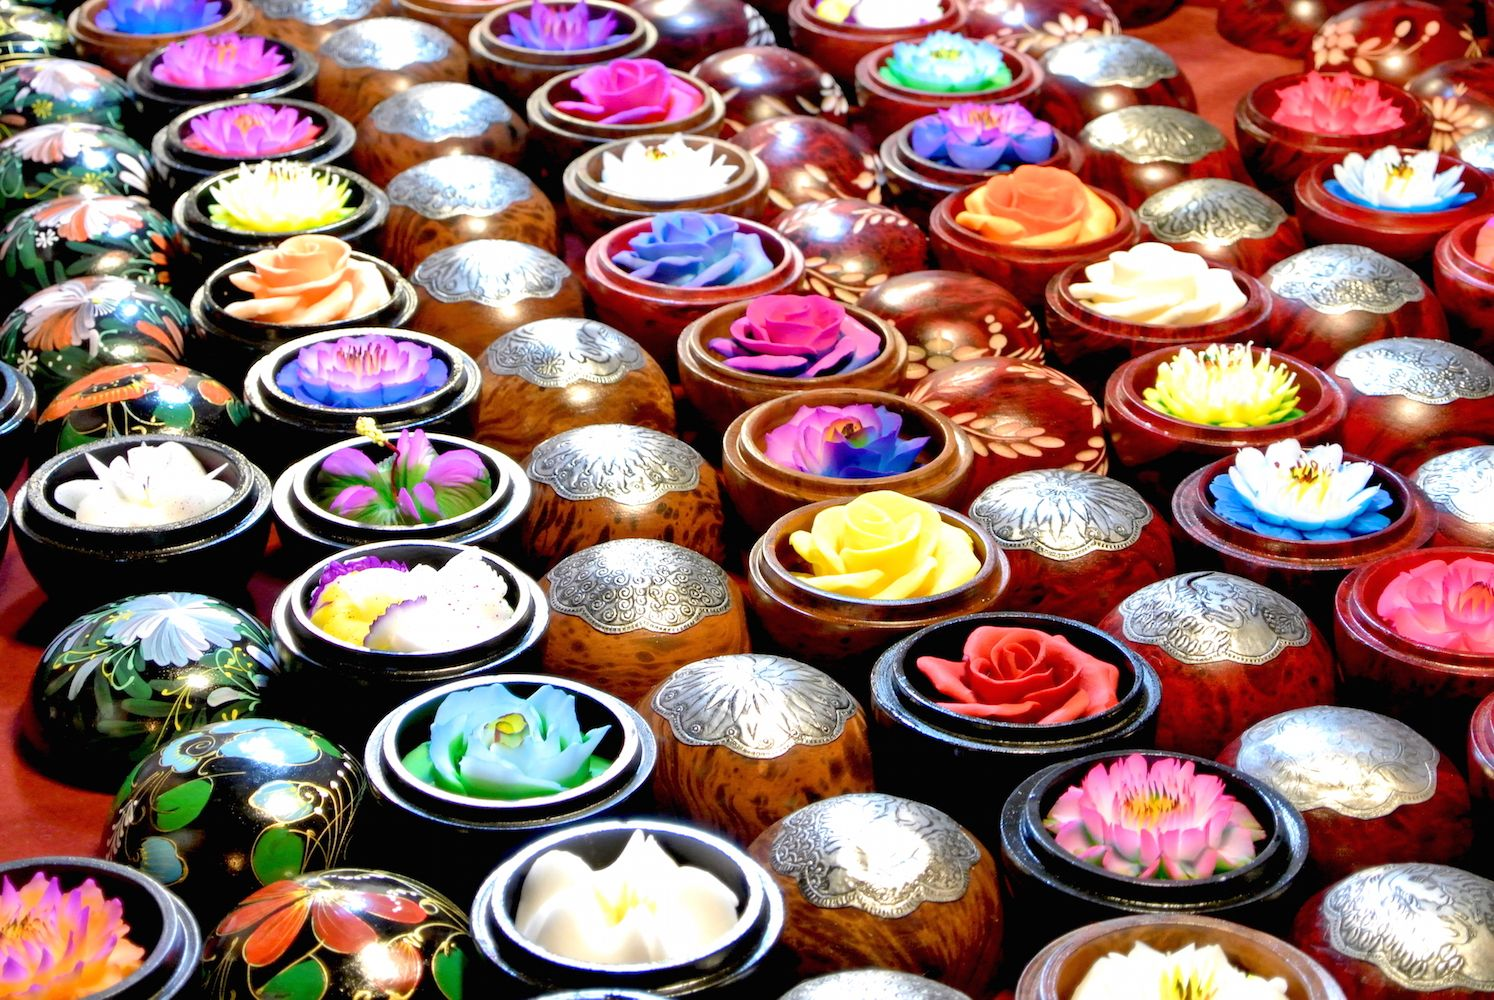 If You Re Unsure What To In Northern Thailand As A Souvenir The Chiang Mai Night Bazaar Is Basically One Stop Full Of Great Options